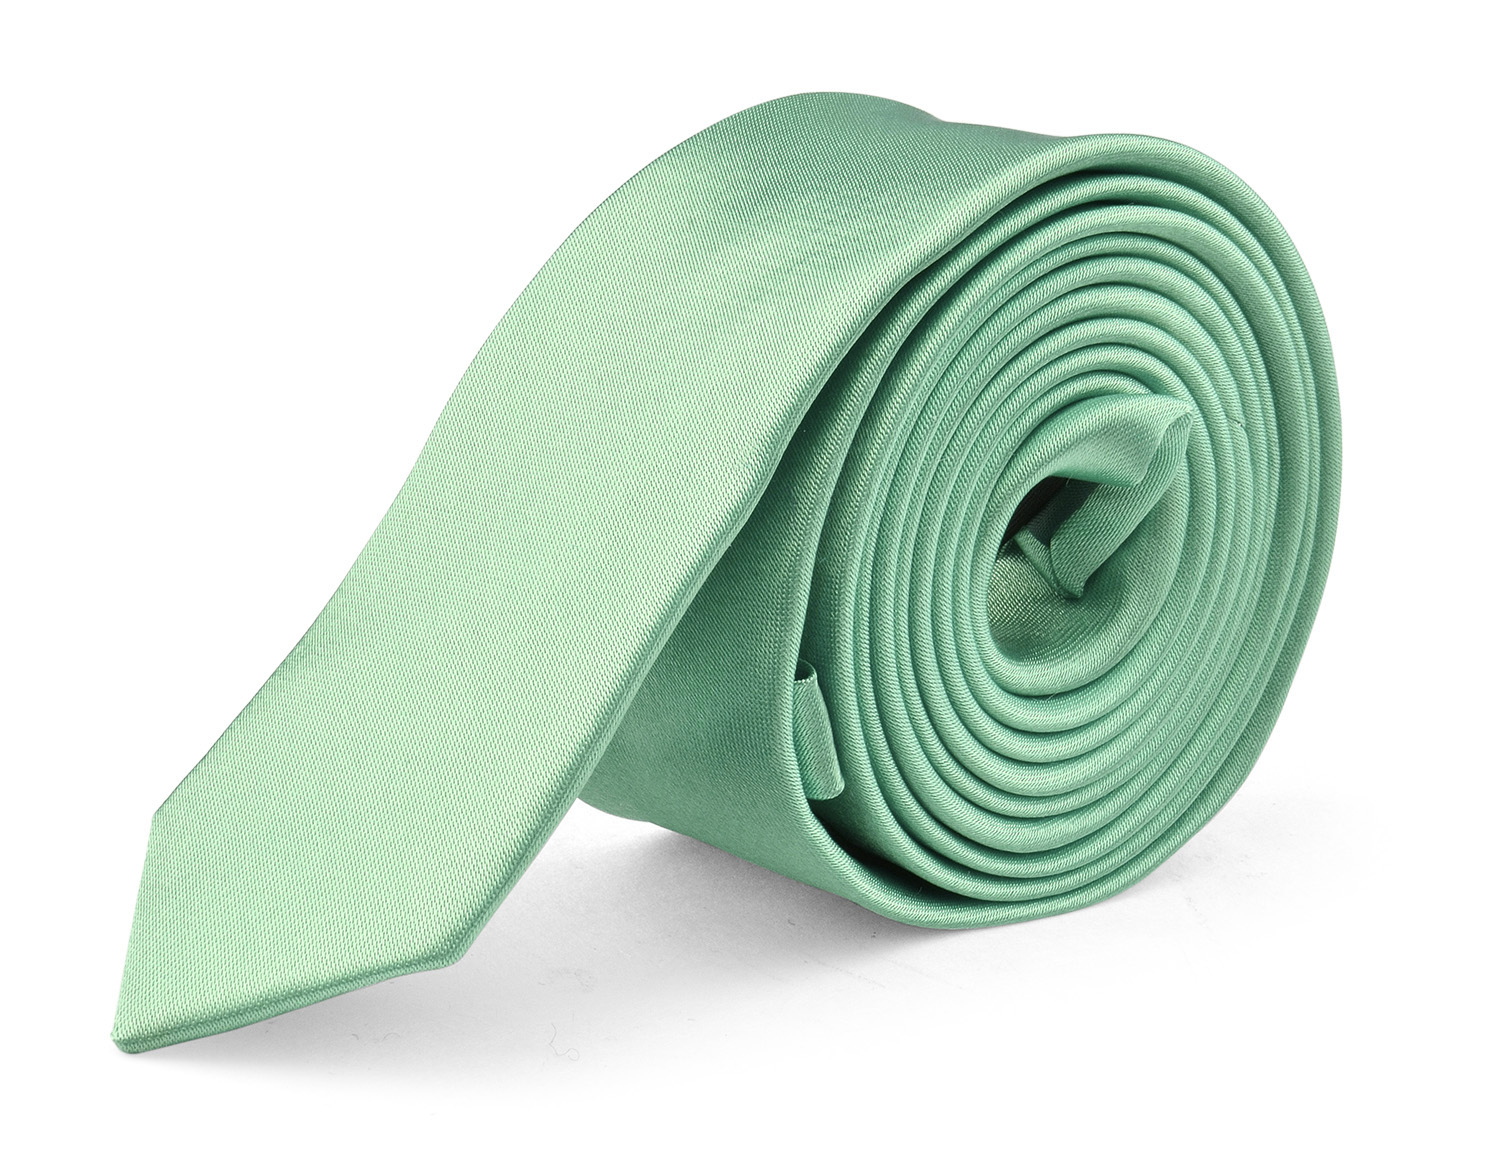 Neck Ties For Mens Skinny Slim Silk Finish Fashion Long Necktie - Solid Color MDR - Aqua Green 1.5 inch